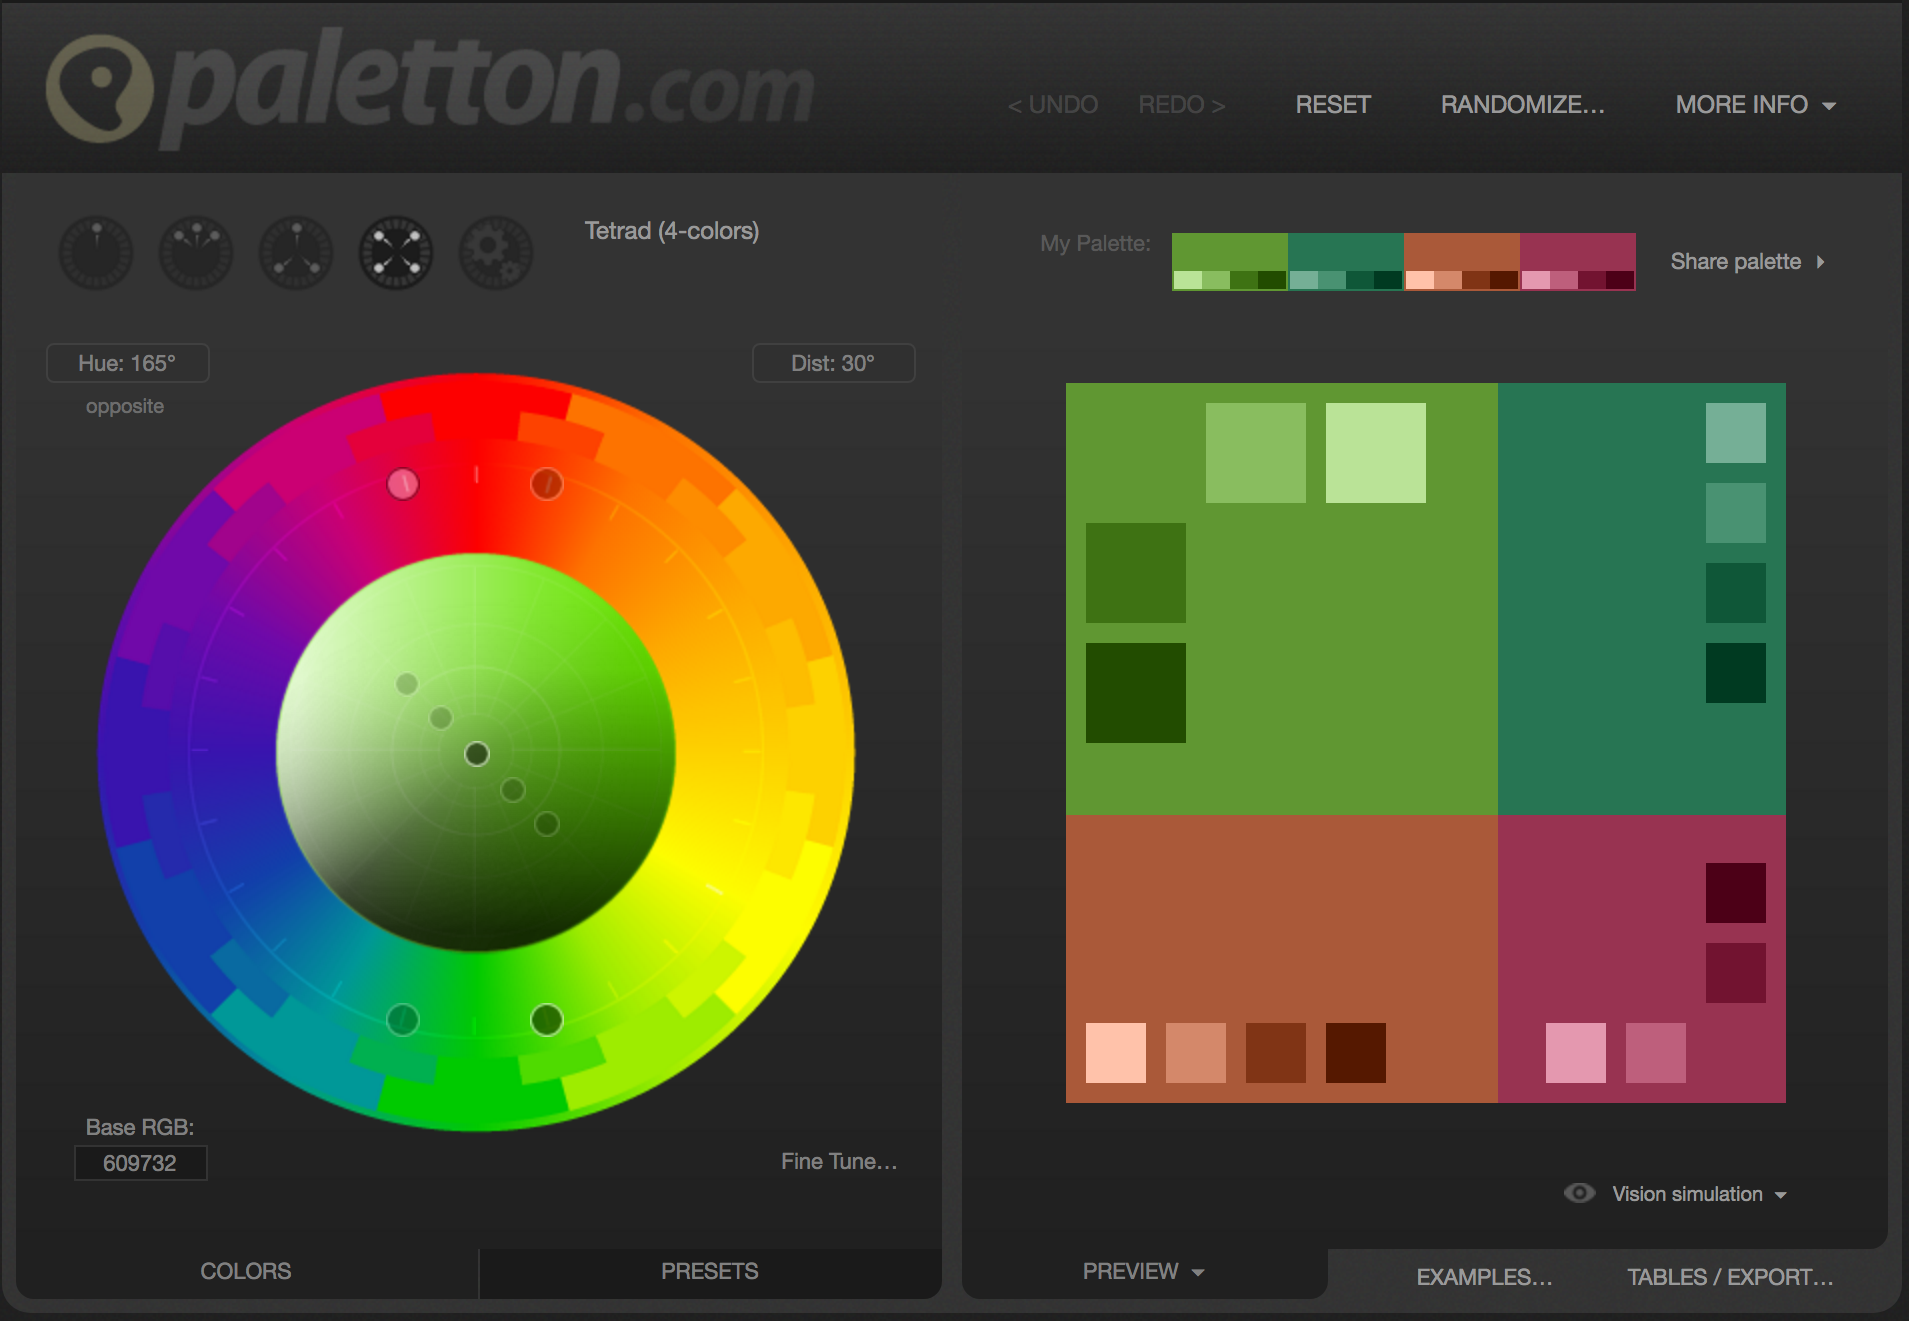 The paletton.com colors manipulation interface